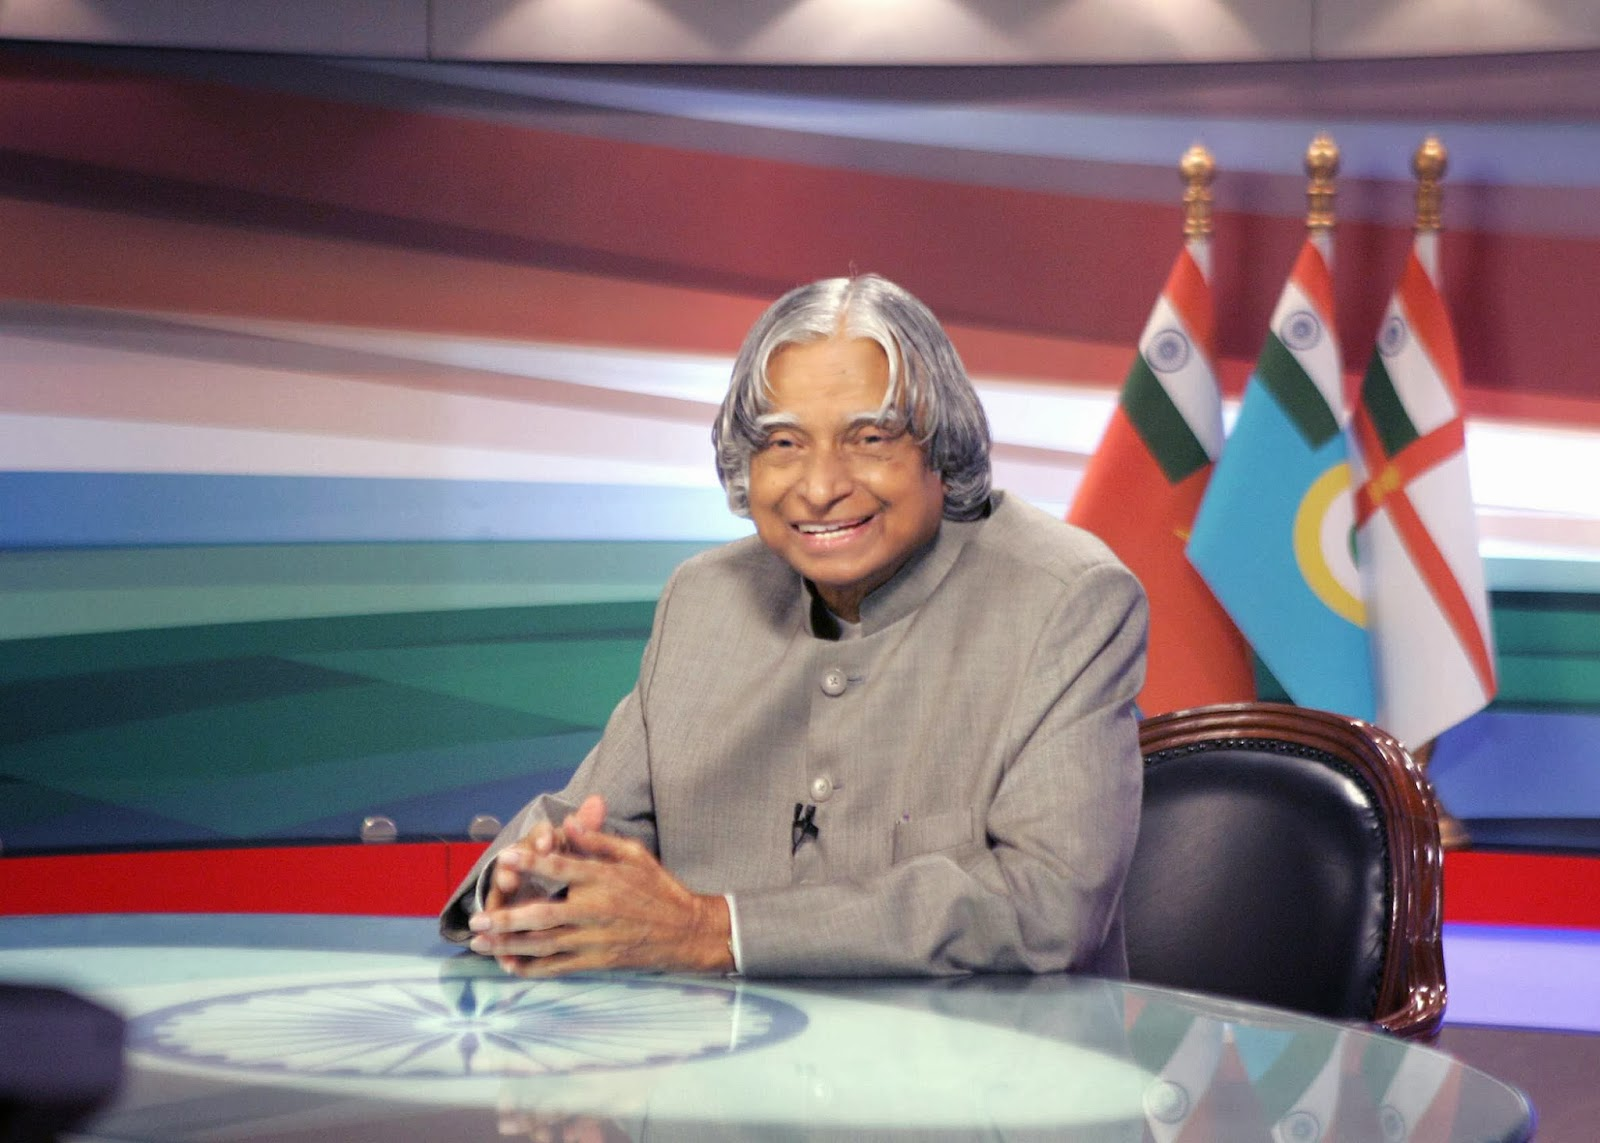 orgnisation behavior of a p j abdul kalam Website designed and hosted by national informatics centre content of this website has been sourced from the then website of dr apj abdul kalam during his tenureship as the president of india.